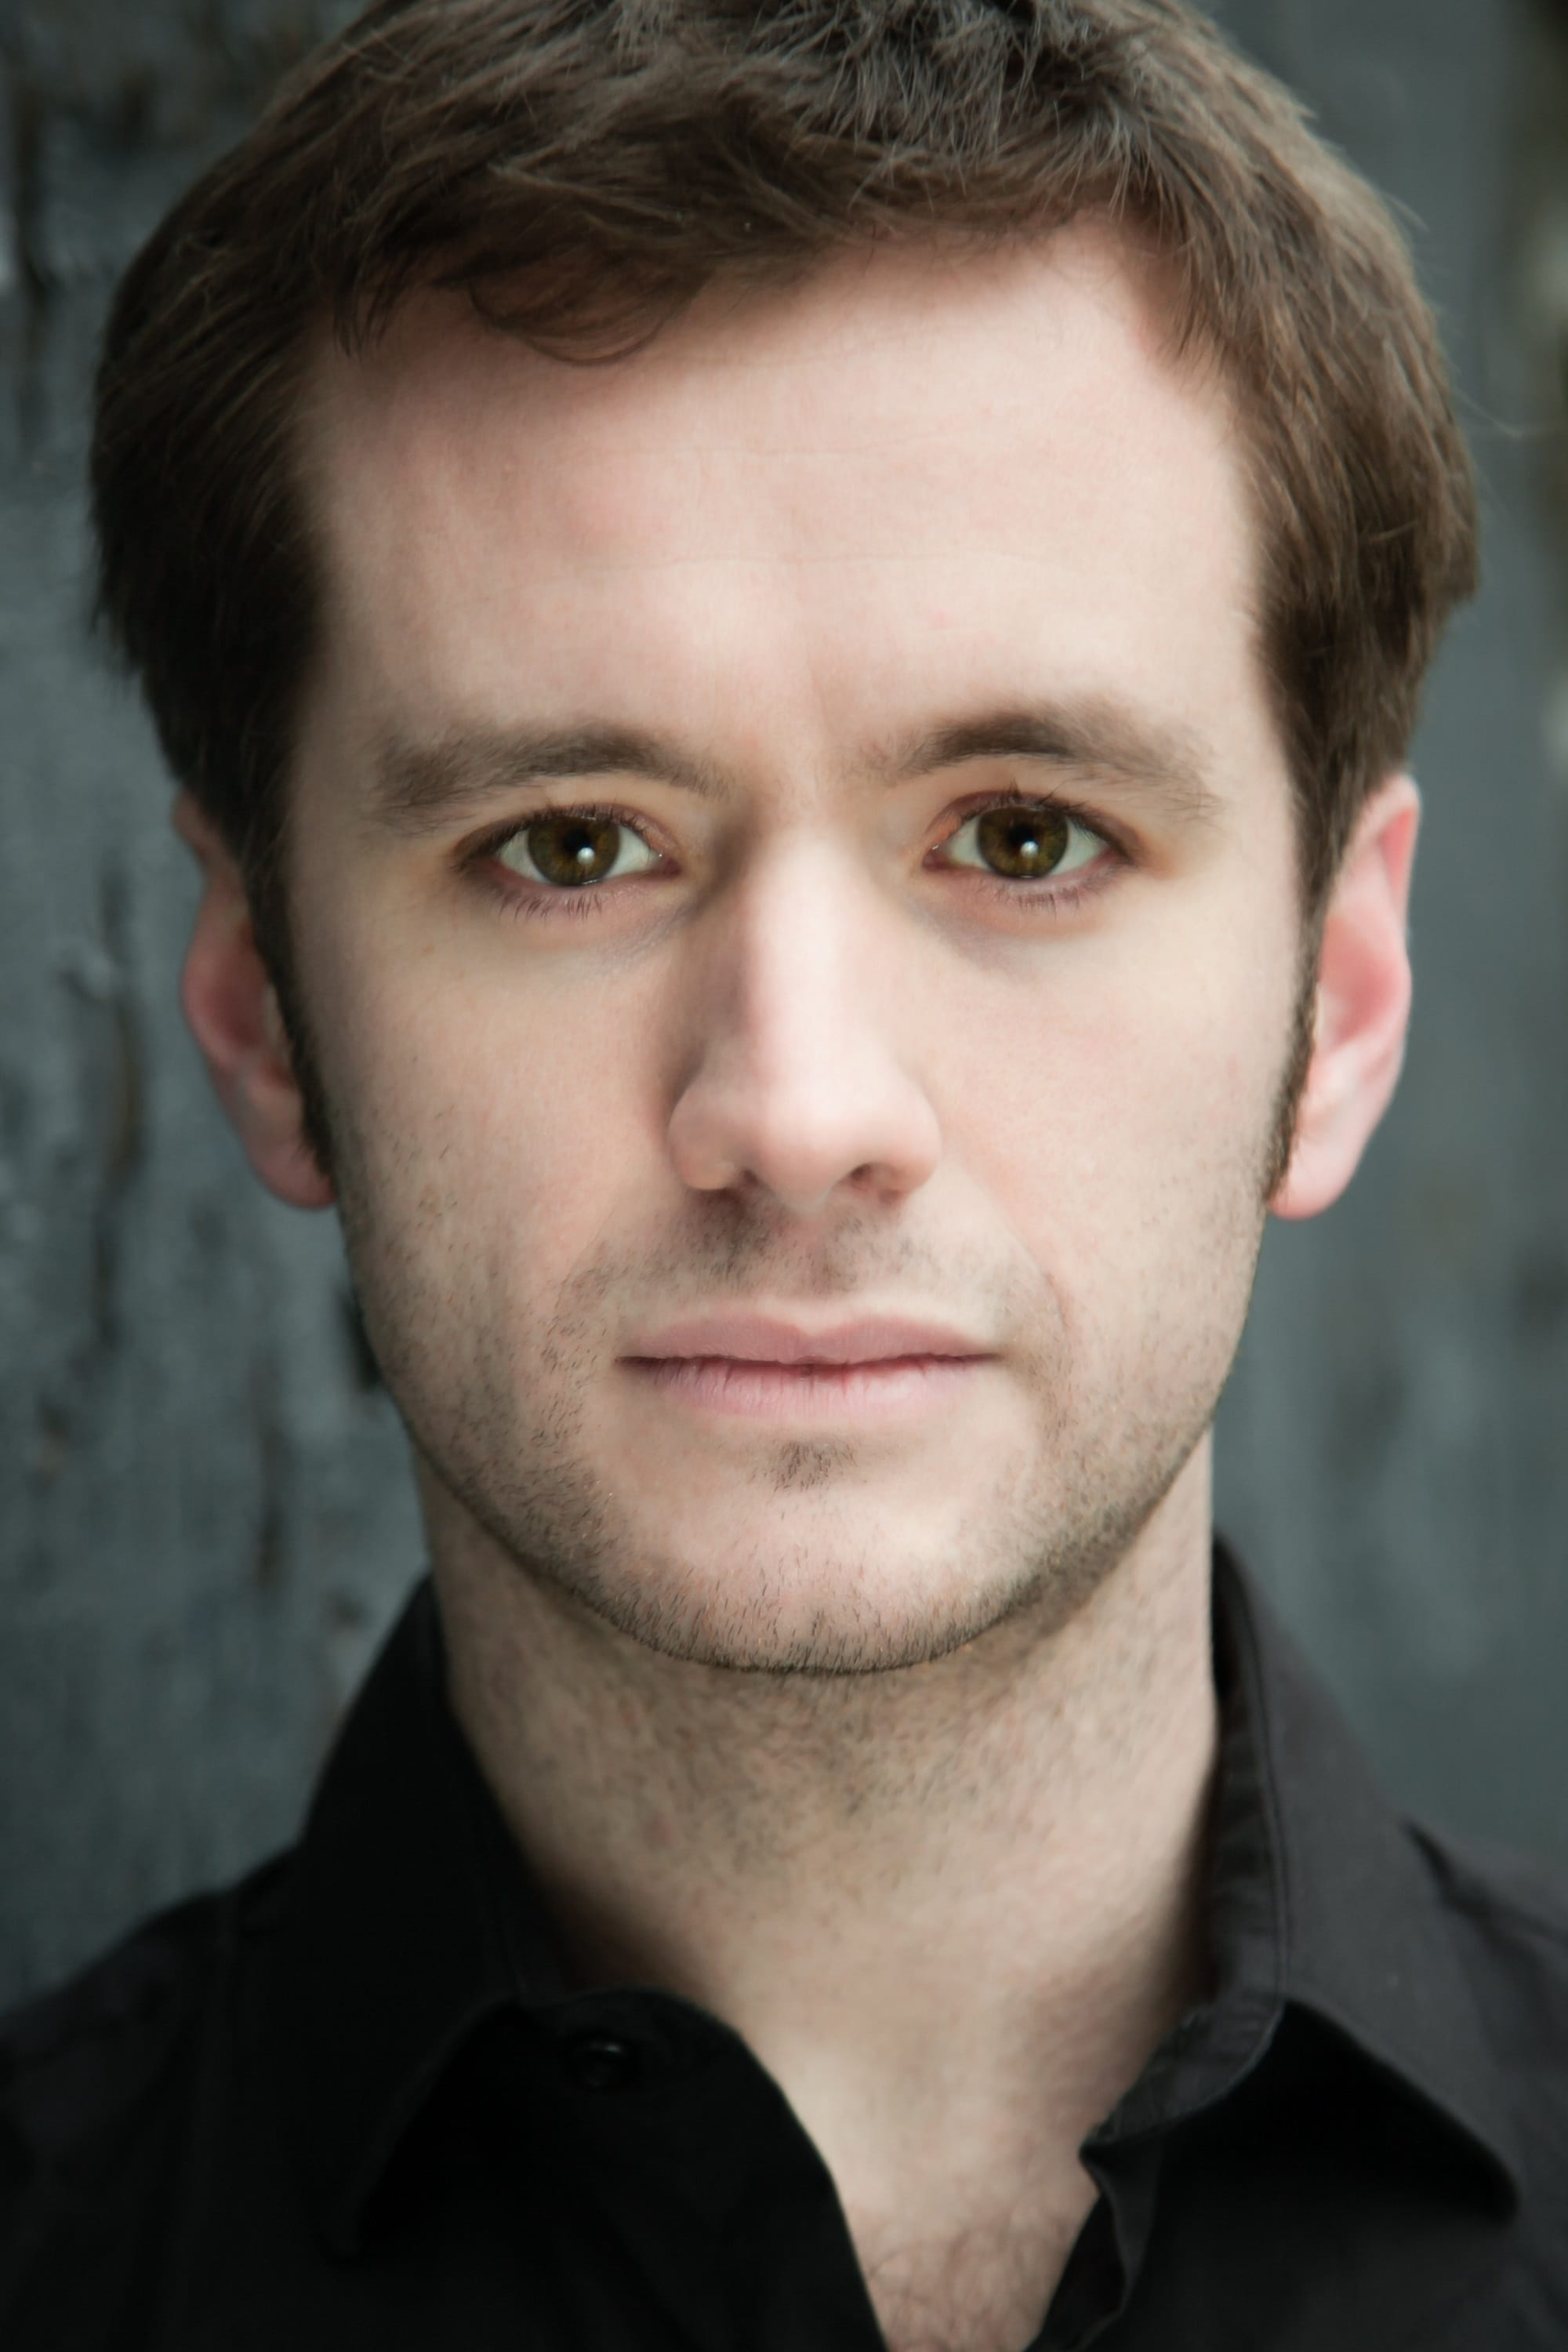 Sean Biggerstaff (born 1983)